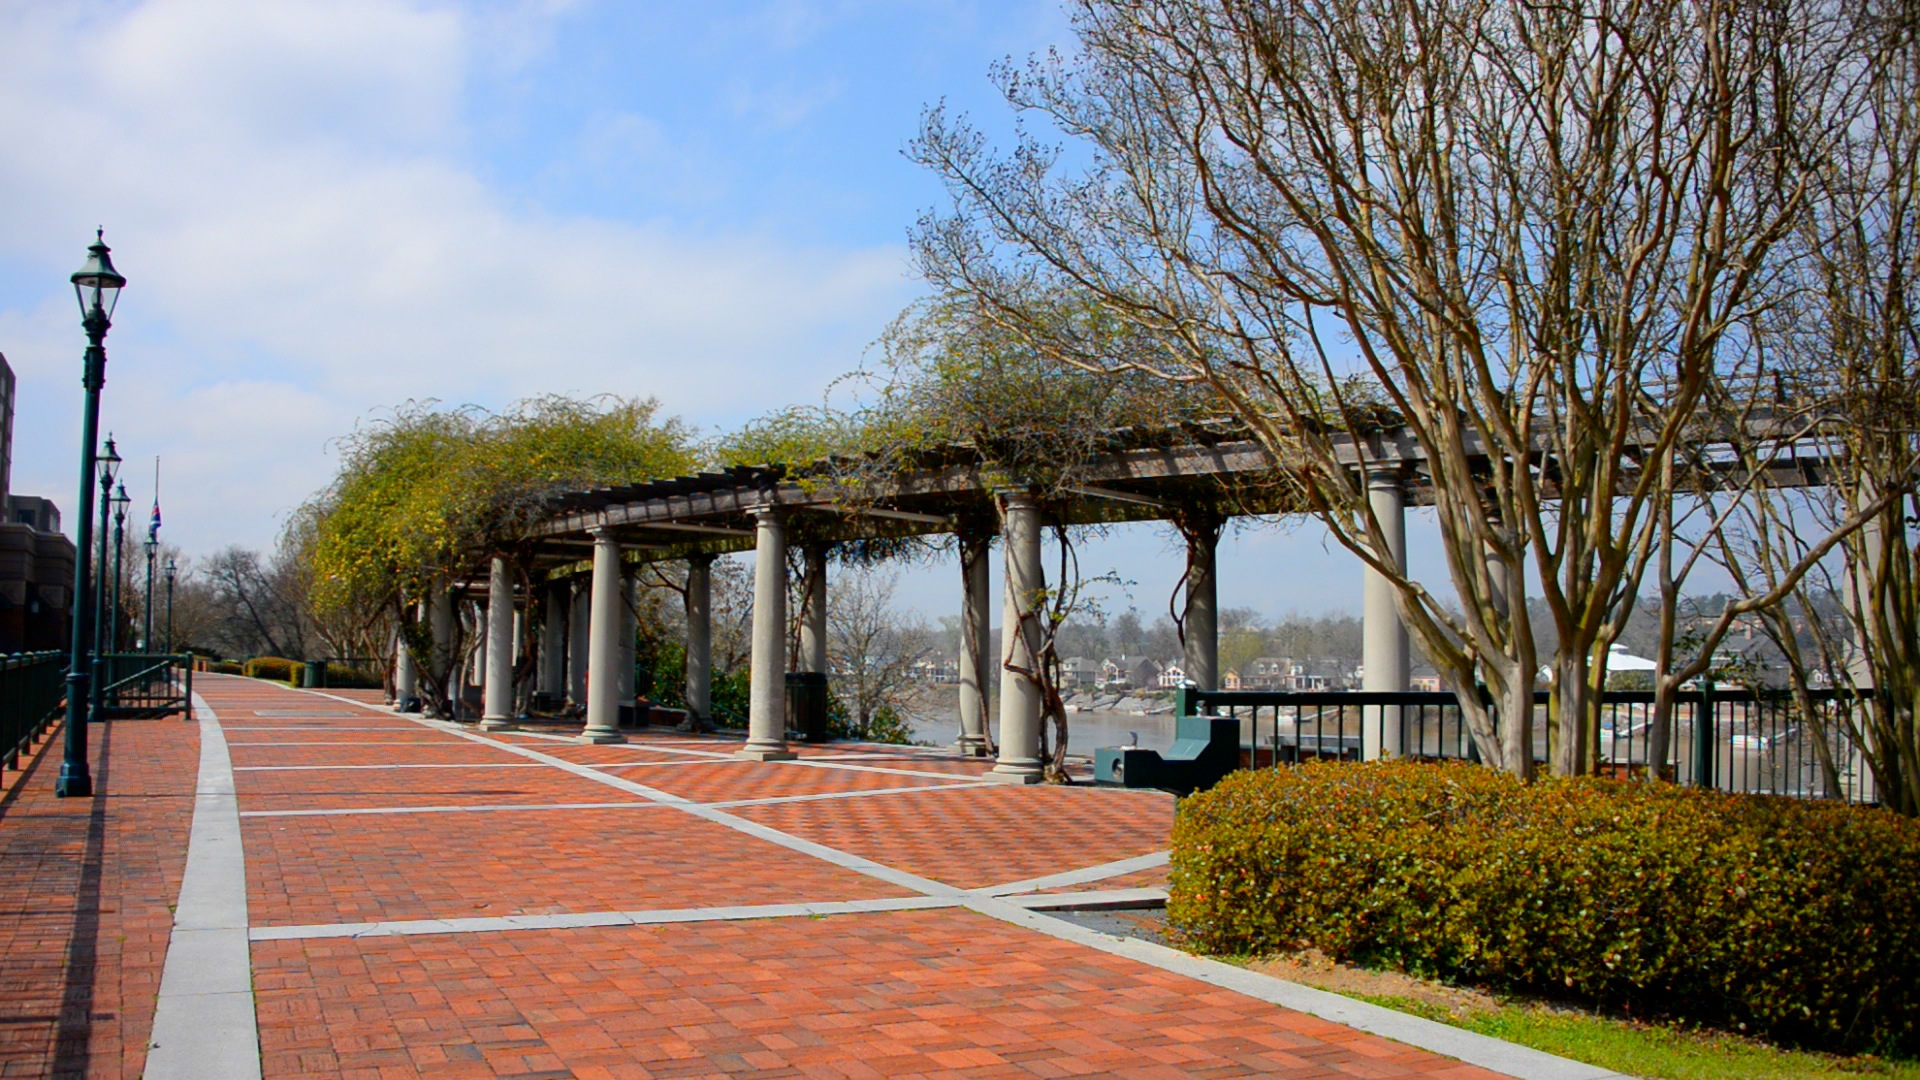 31 things to do around augusta that are not the masters huffpost for Things to do in garden city sc